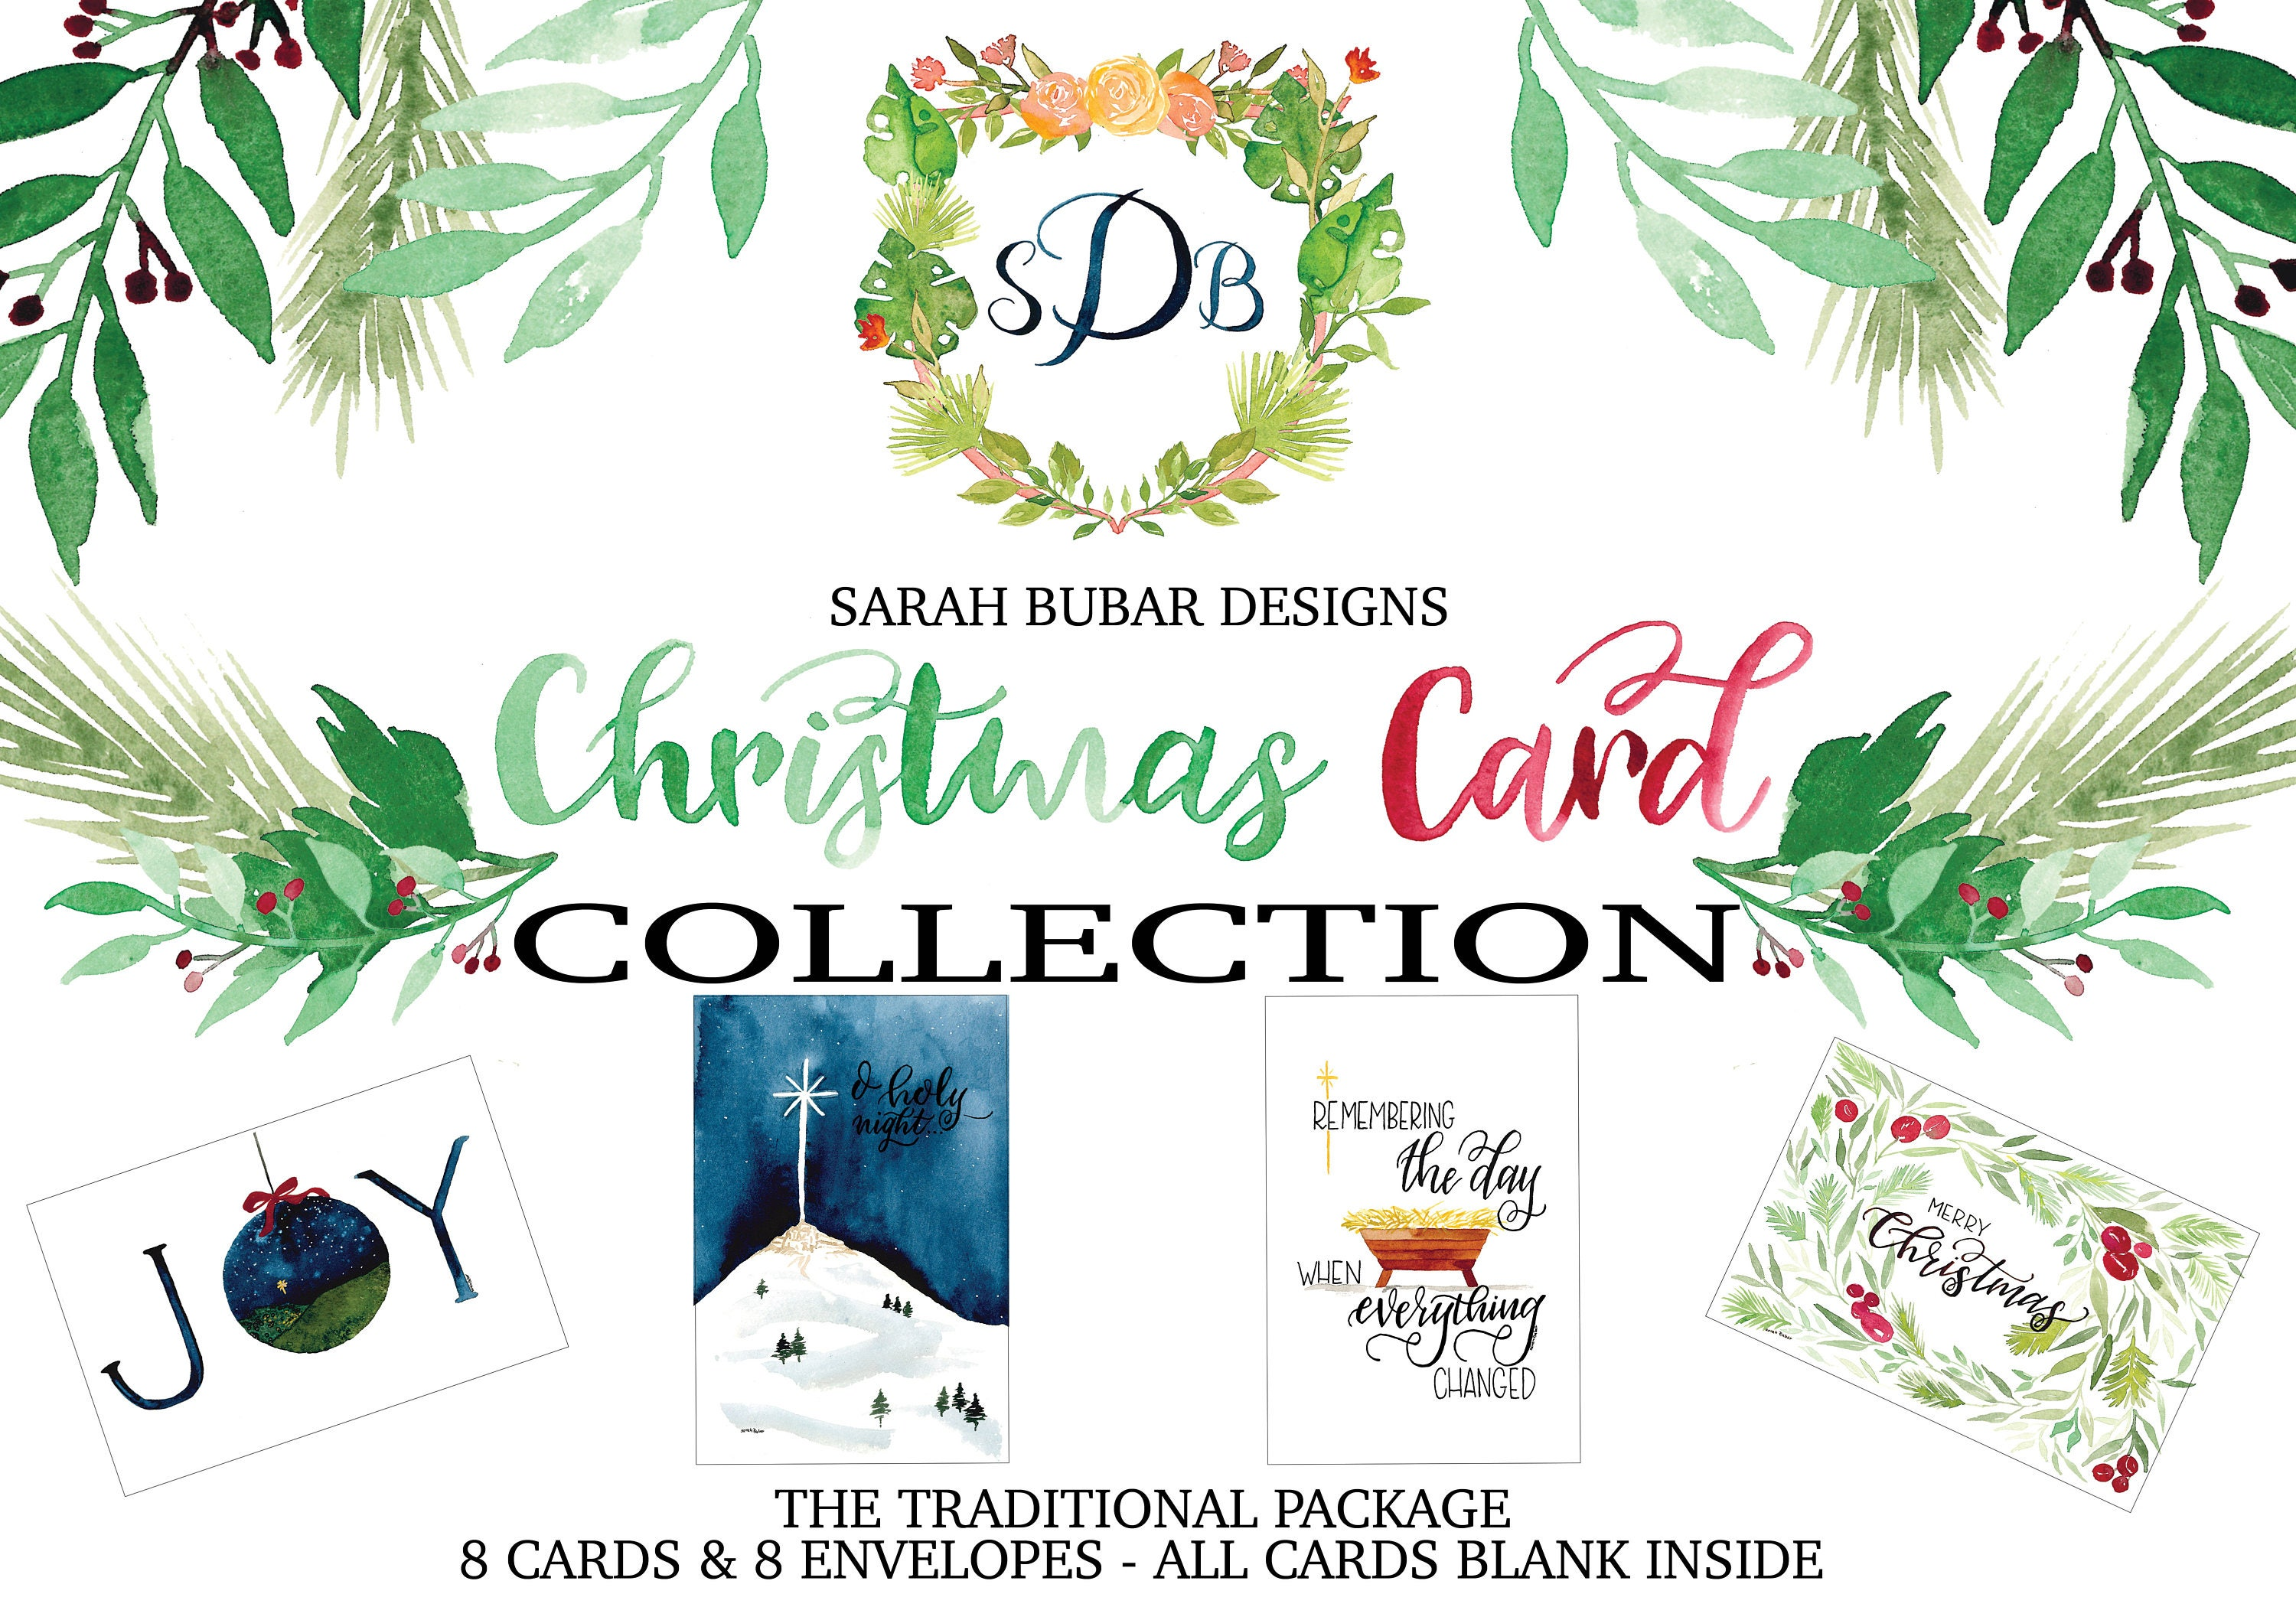 Greeting cards sarah bubar designs christmas card collection the traditional package kristyandbryce Gallery